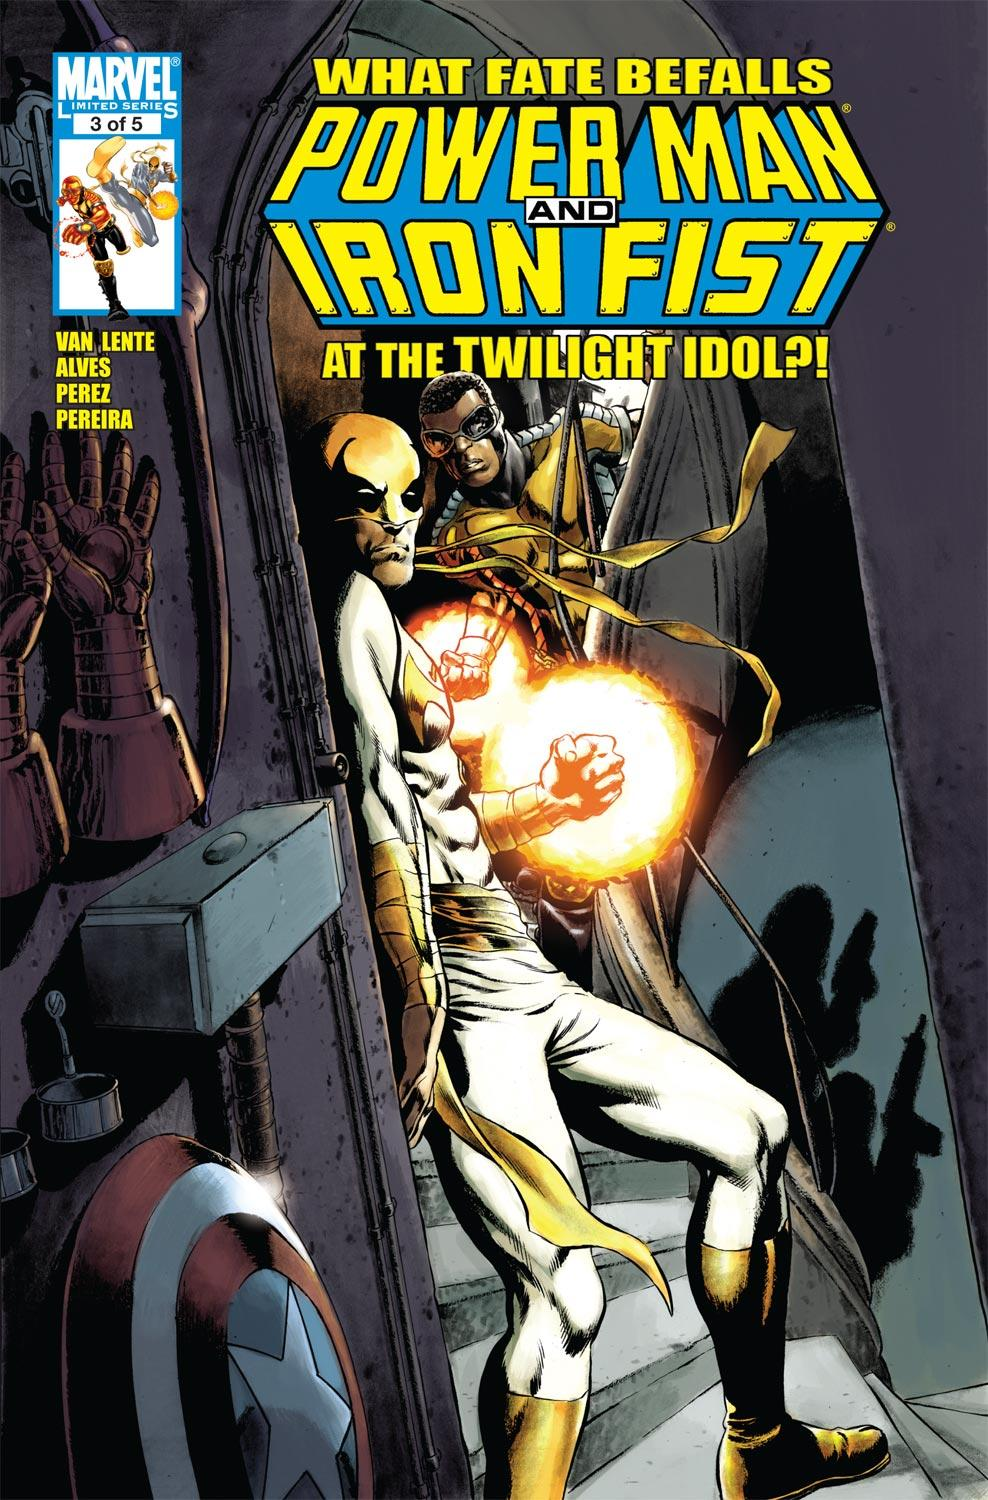 Power Man and Iron Fist (2010) #3